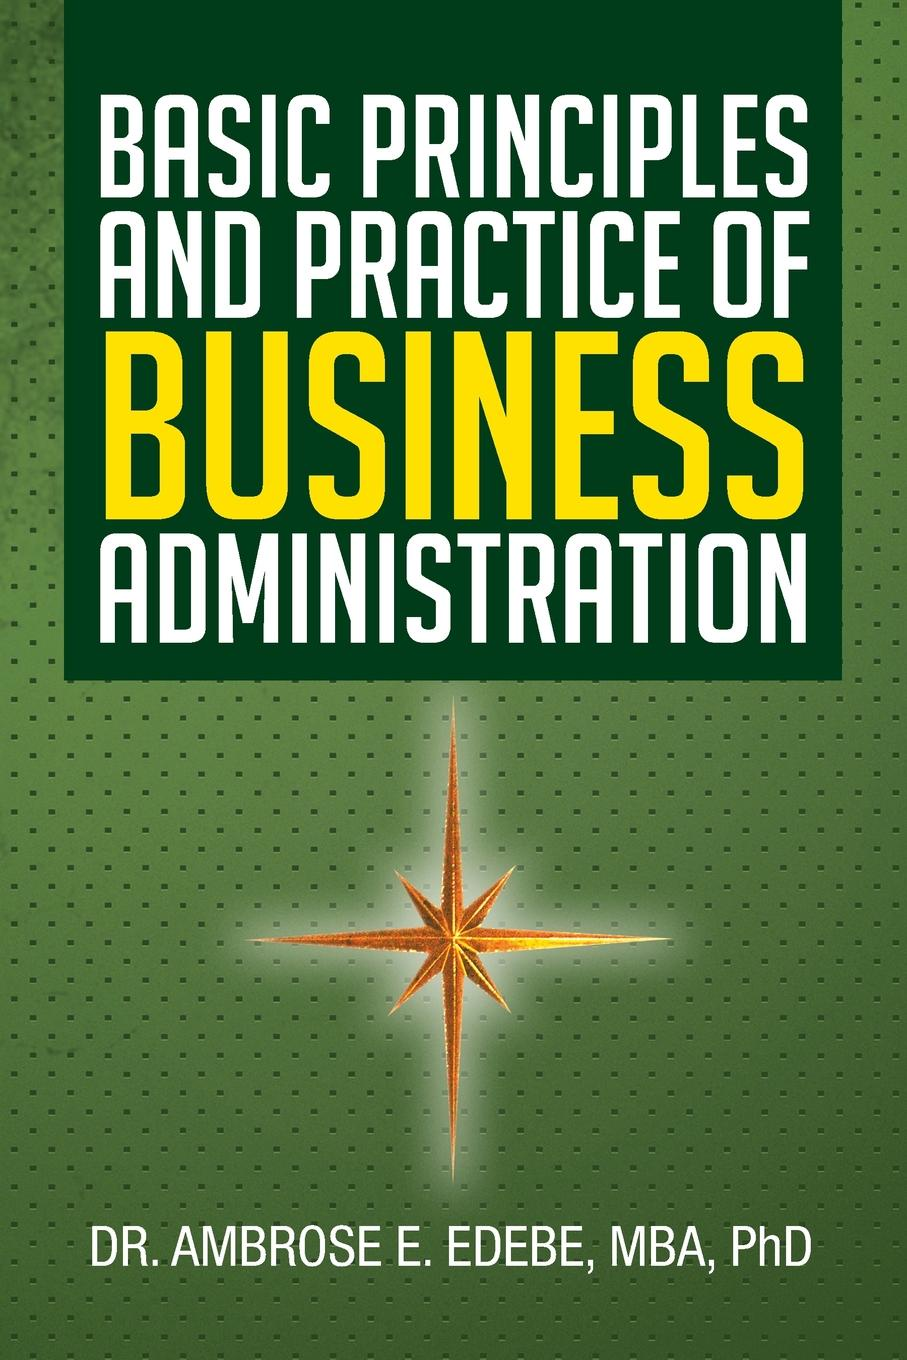 Ambrose E. Edebe, Dr Ambrose E. Edebe Mba Phd Basic Principles and Practice of Business Administration walter pohl l economic geology principles and practice